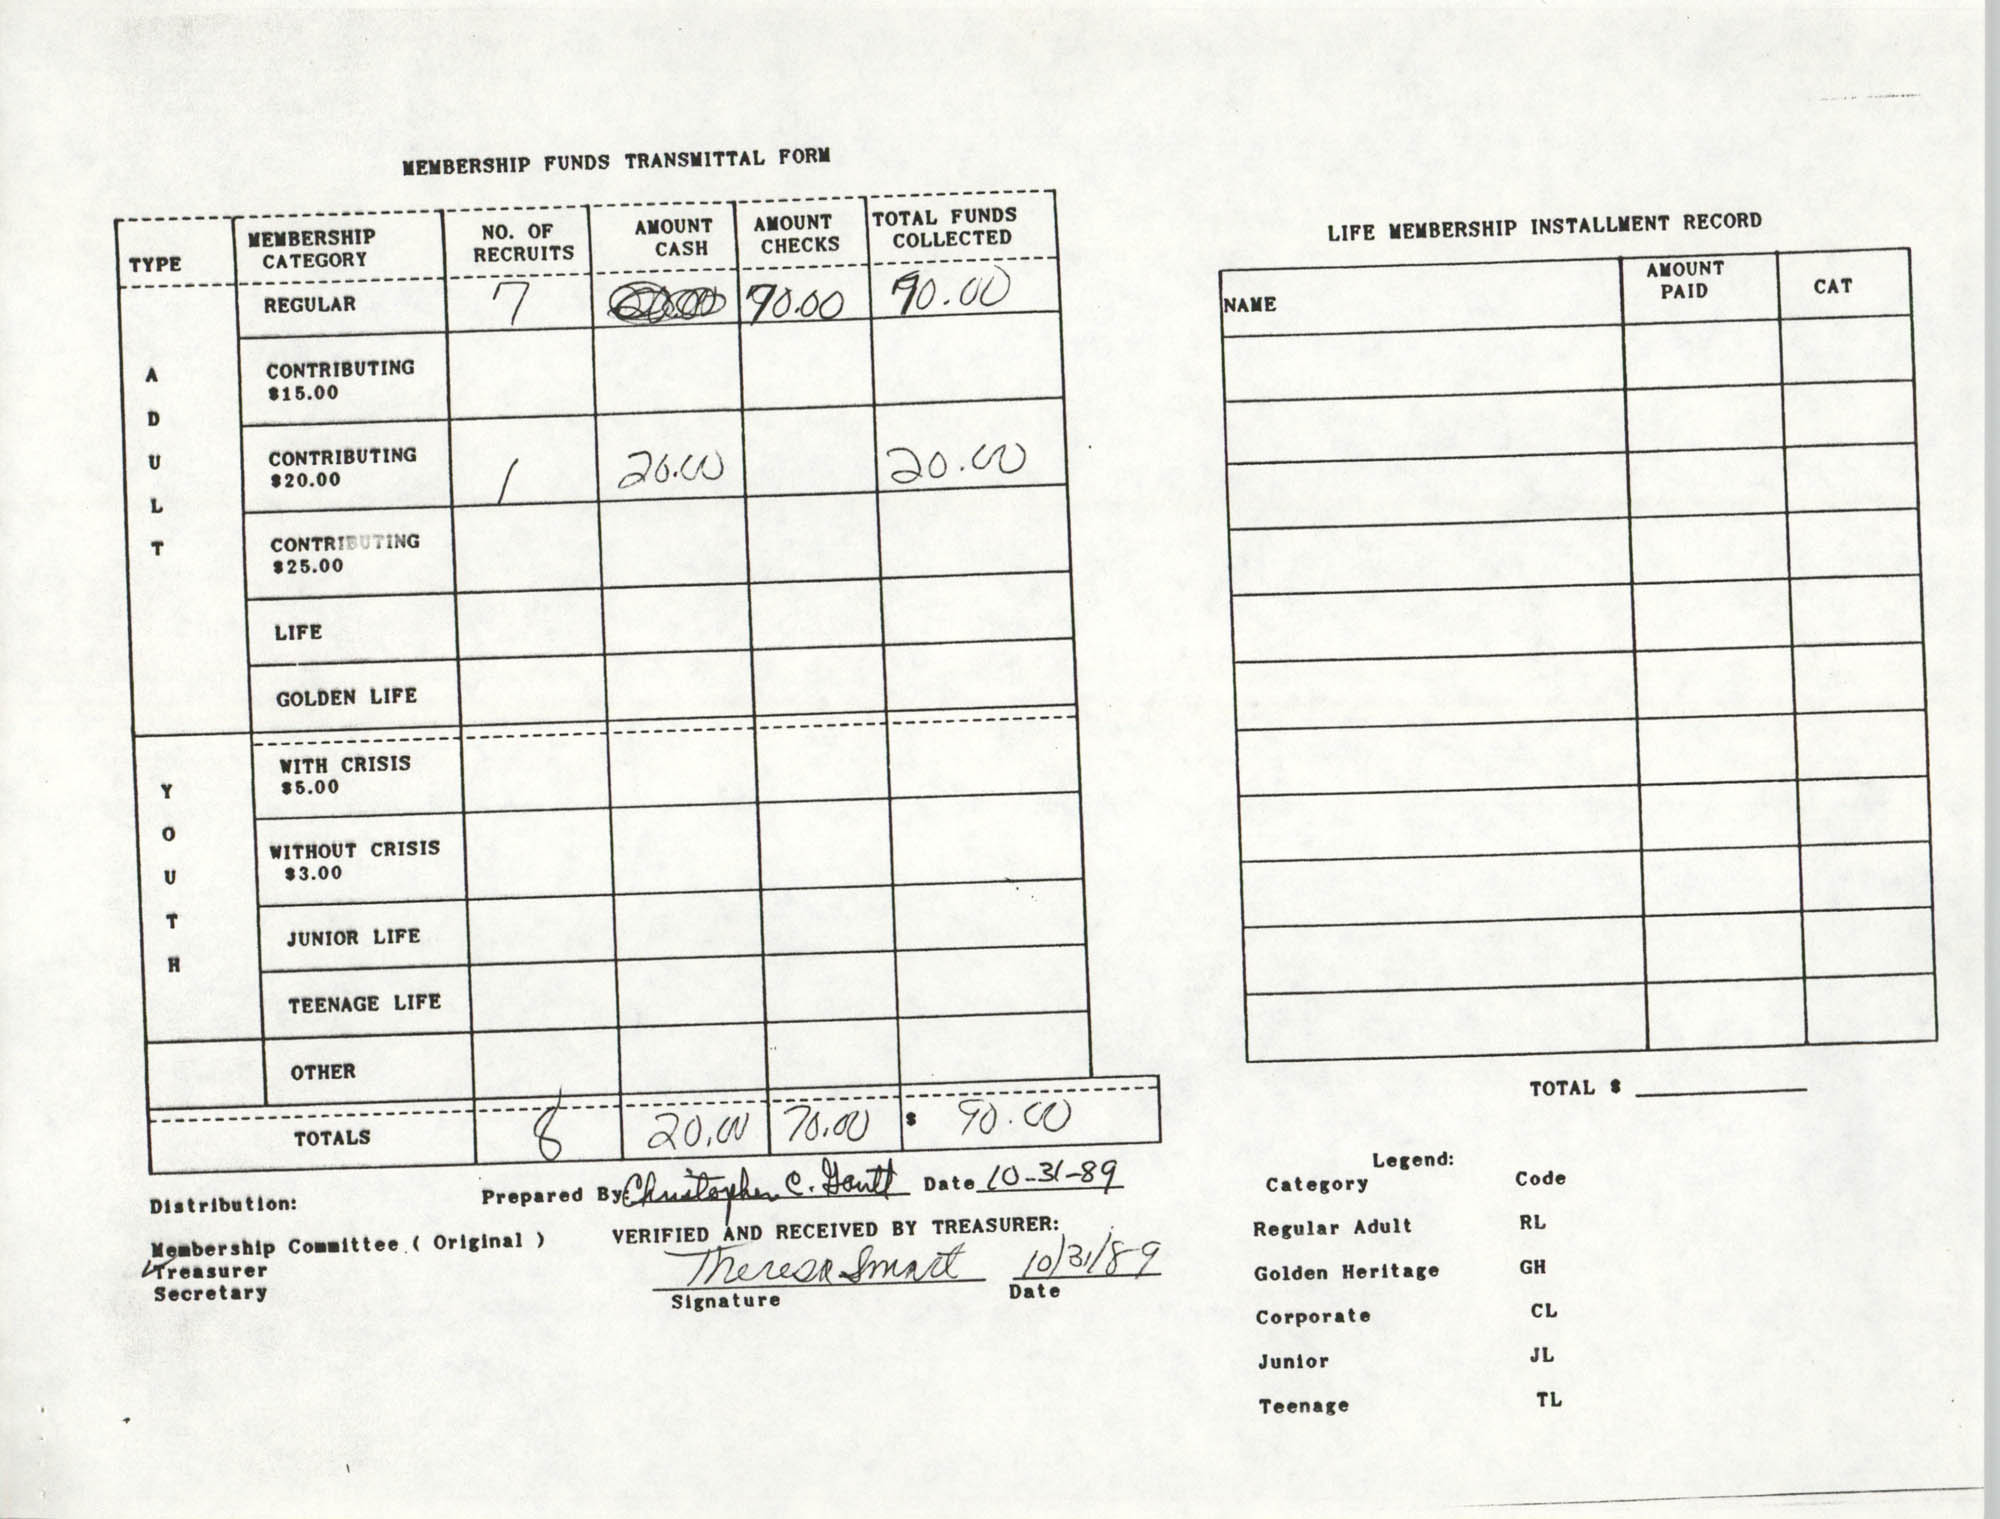 Charleston Branch of the NAACP Funds Transmittal Forms, October 1989, Page 10